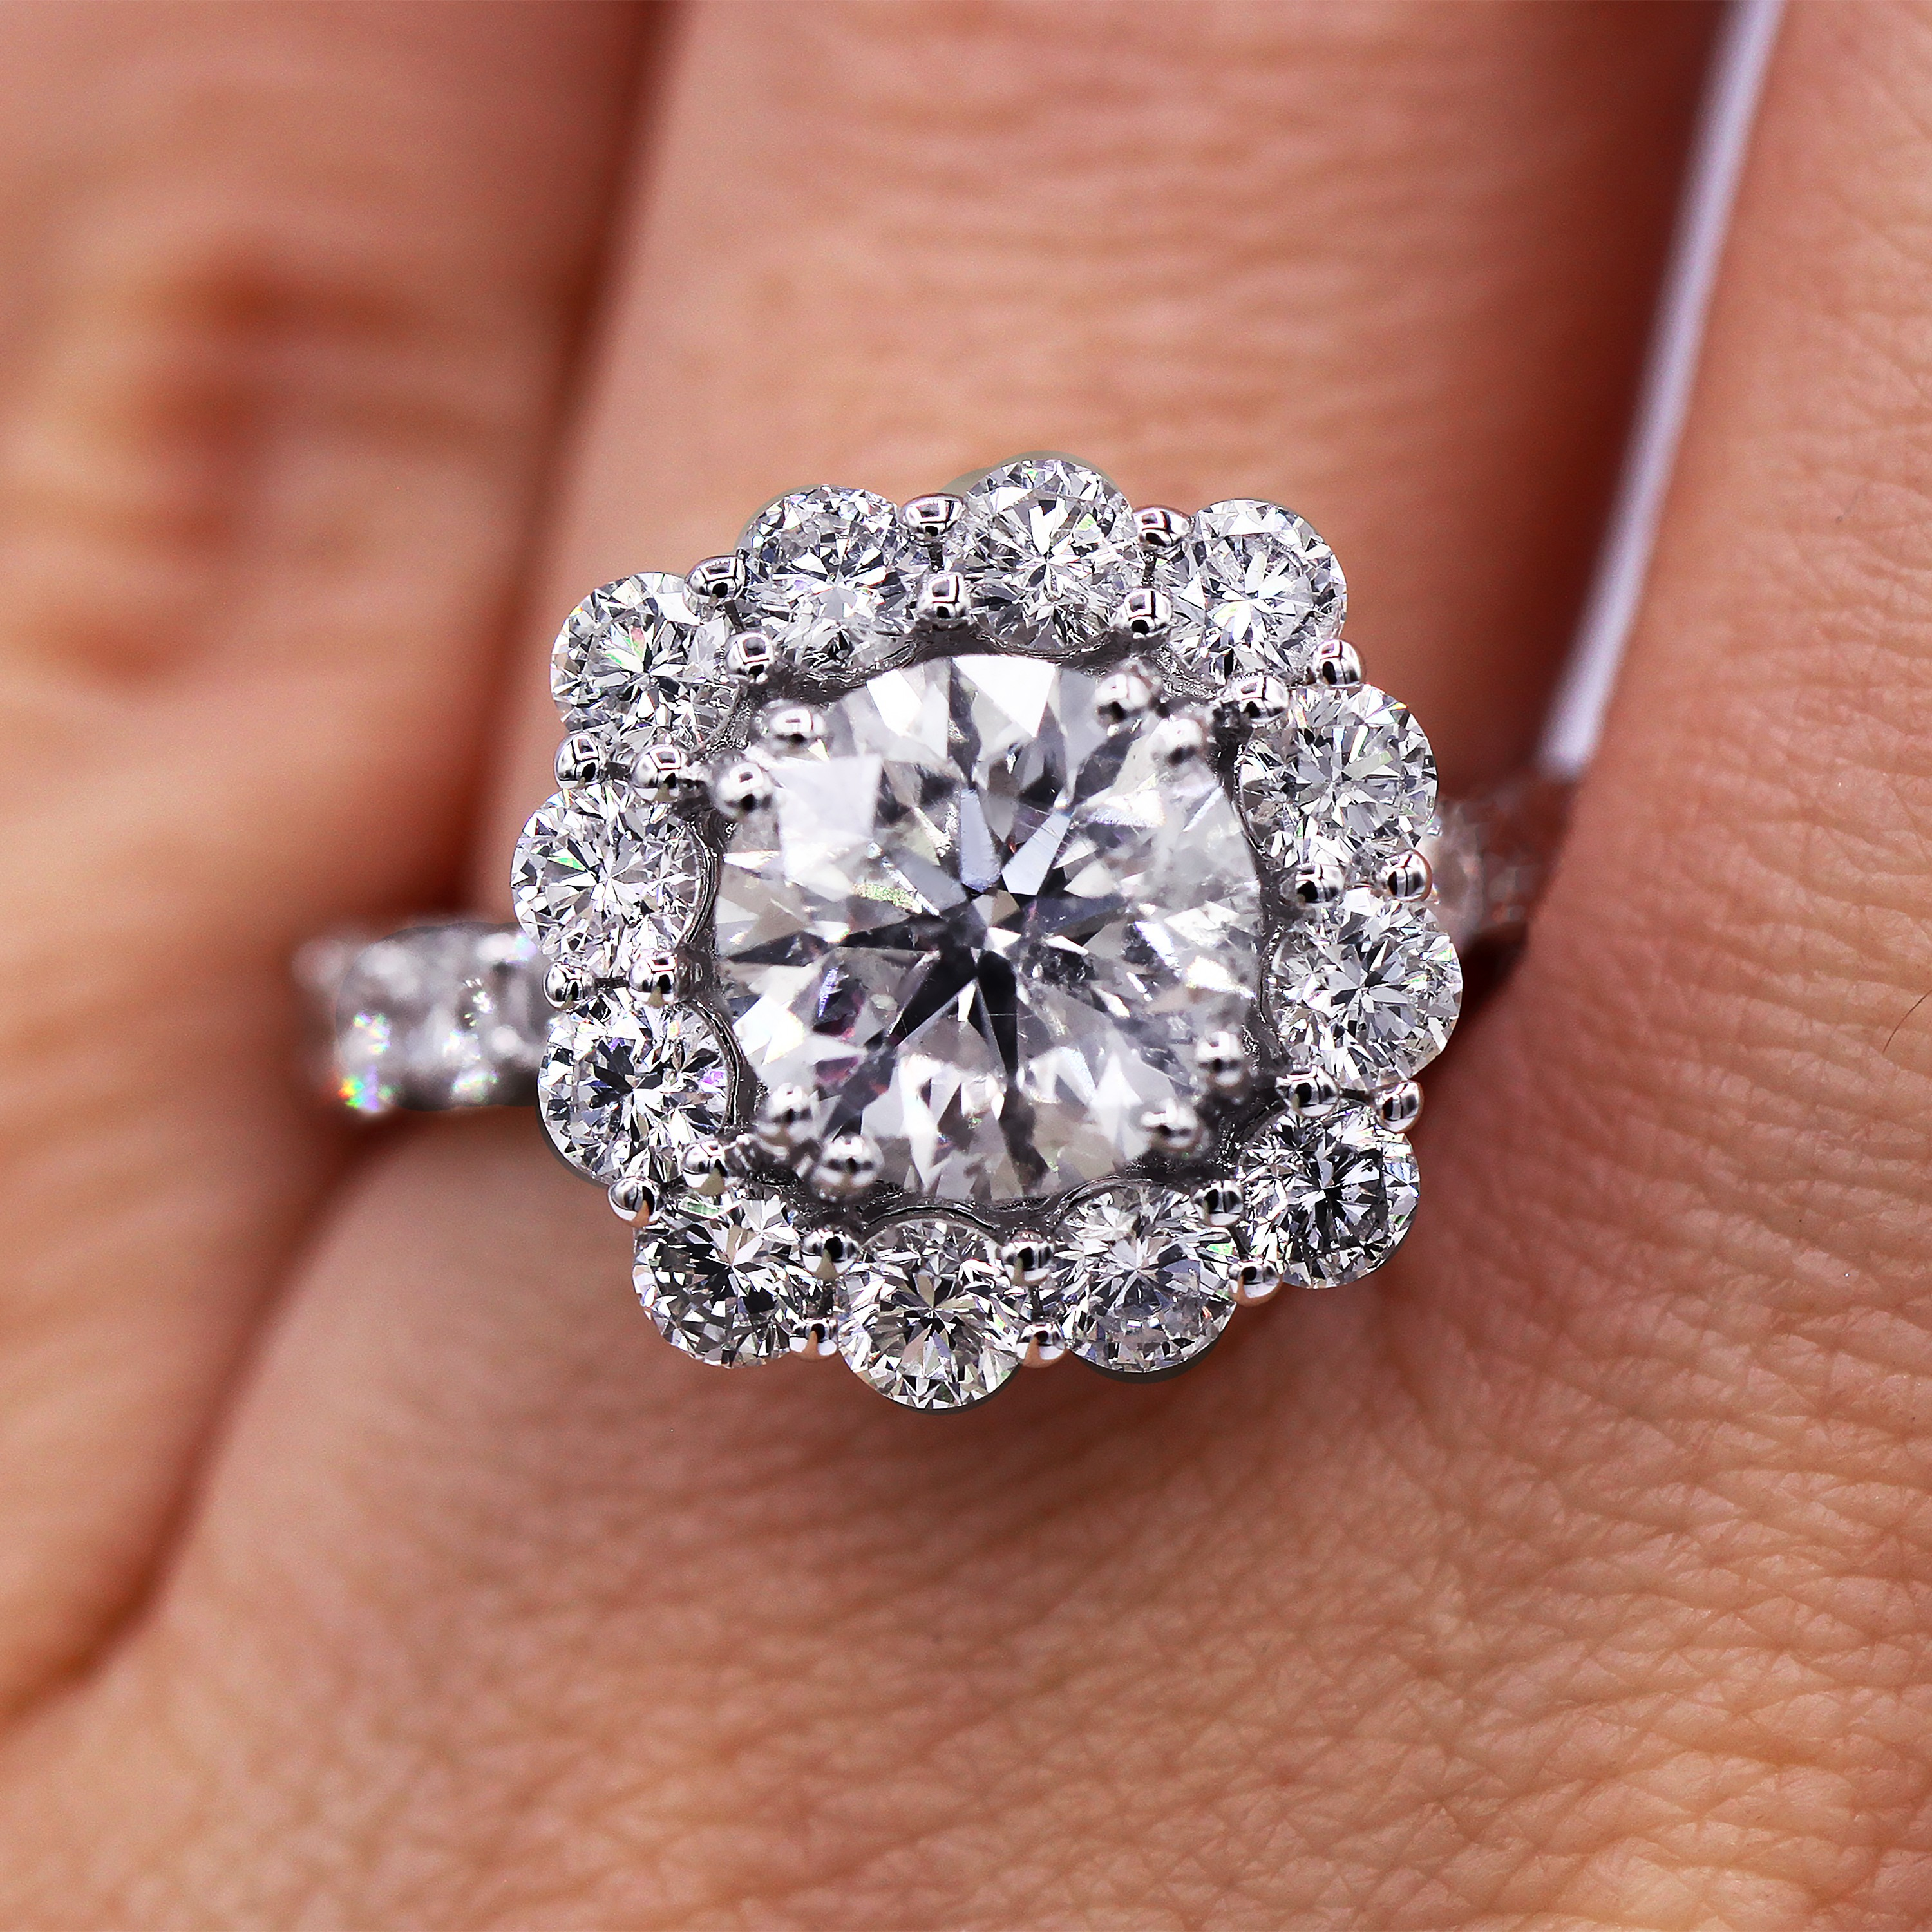 Insanely beautiful diamond engagement ring with 4.26 carats